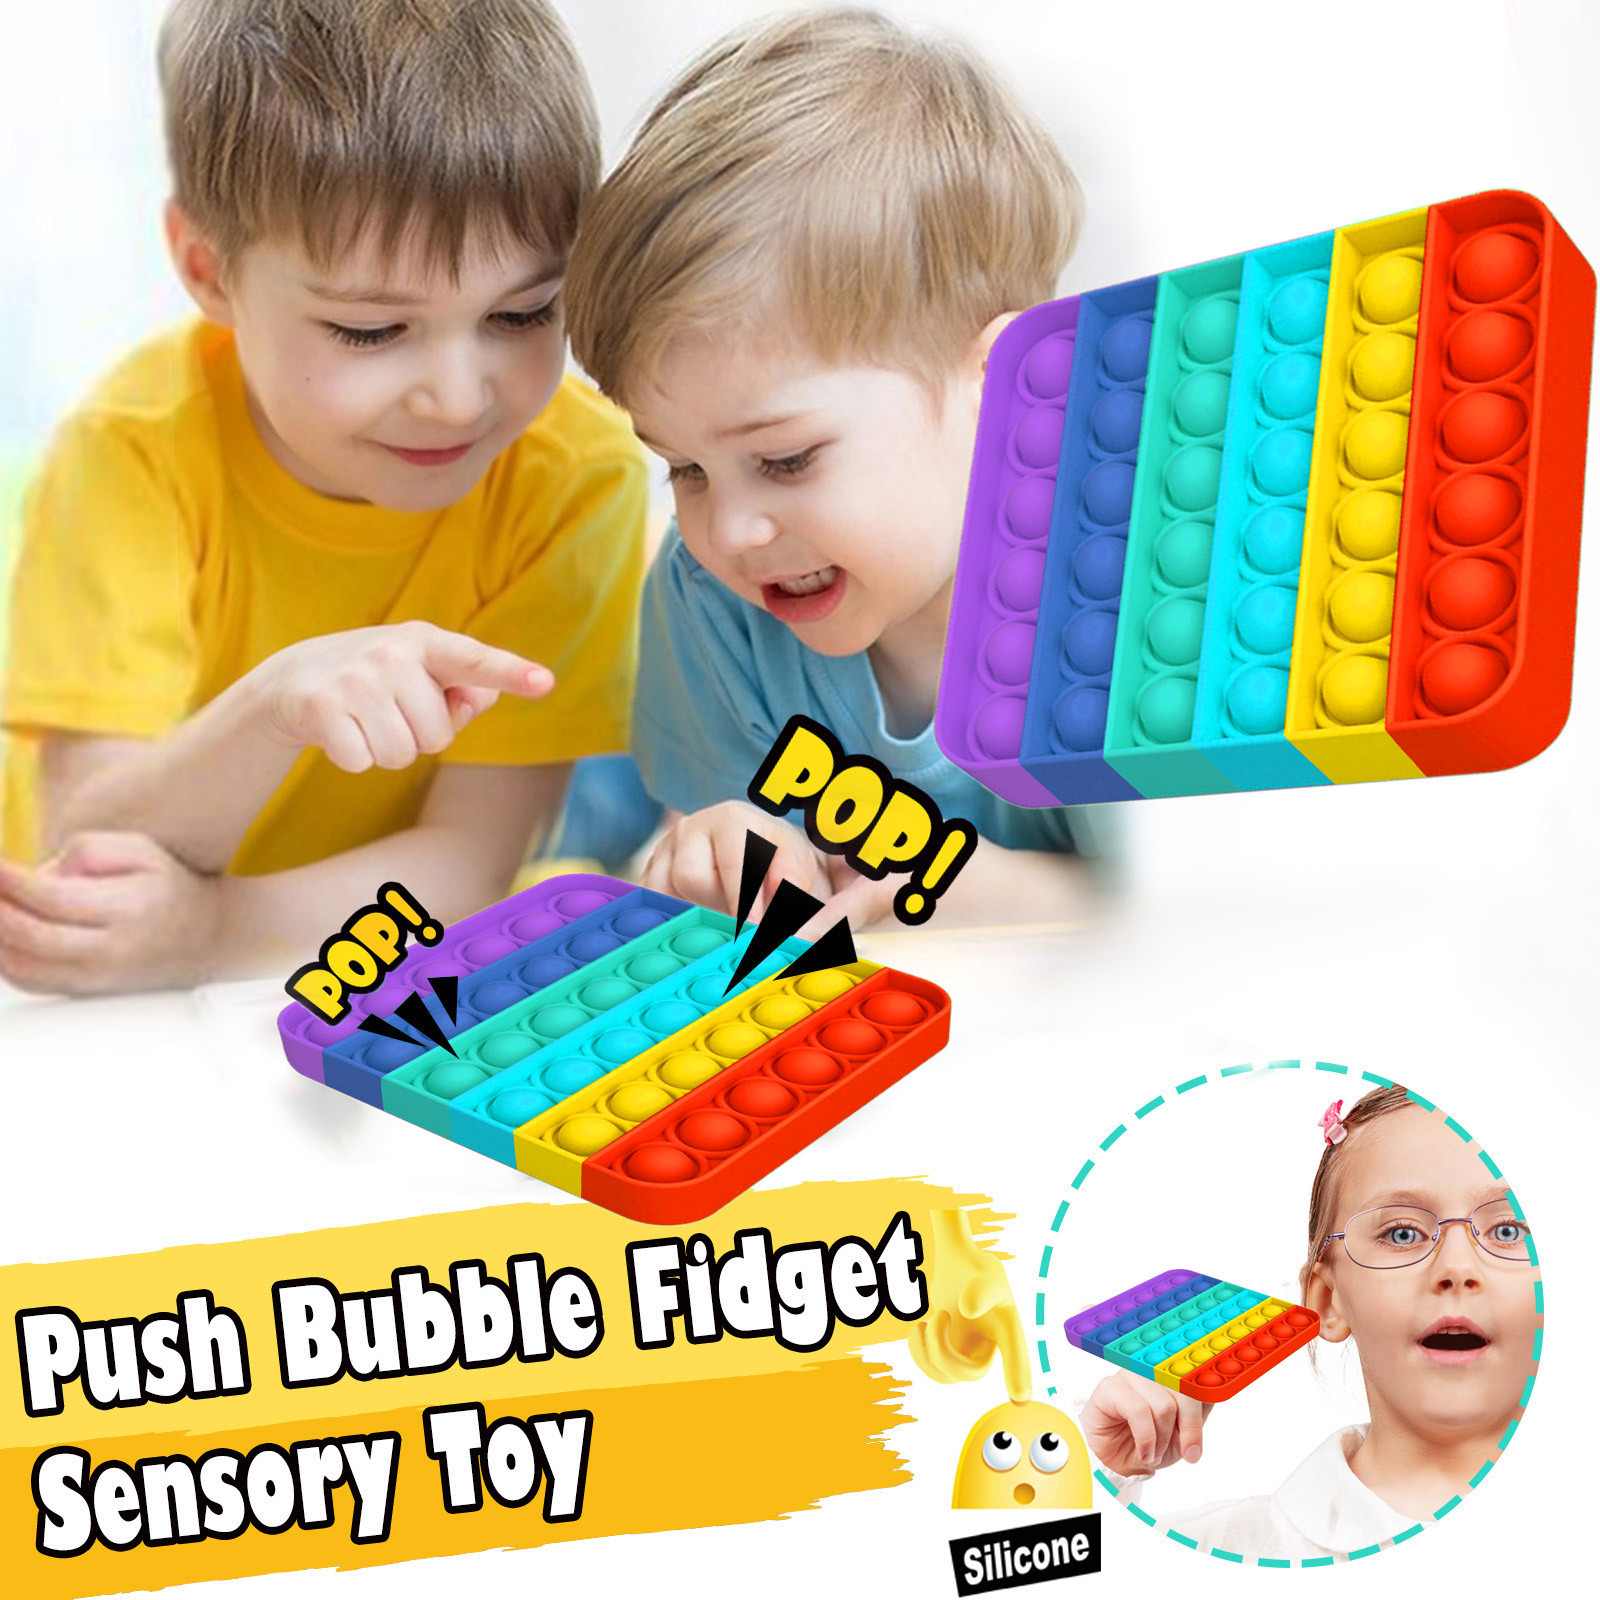 Fitget-Toys Fidget Needs-Stress Pop-It-Game Push Bubble Popoit Sensory-Toy Reliever Adult img2